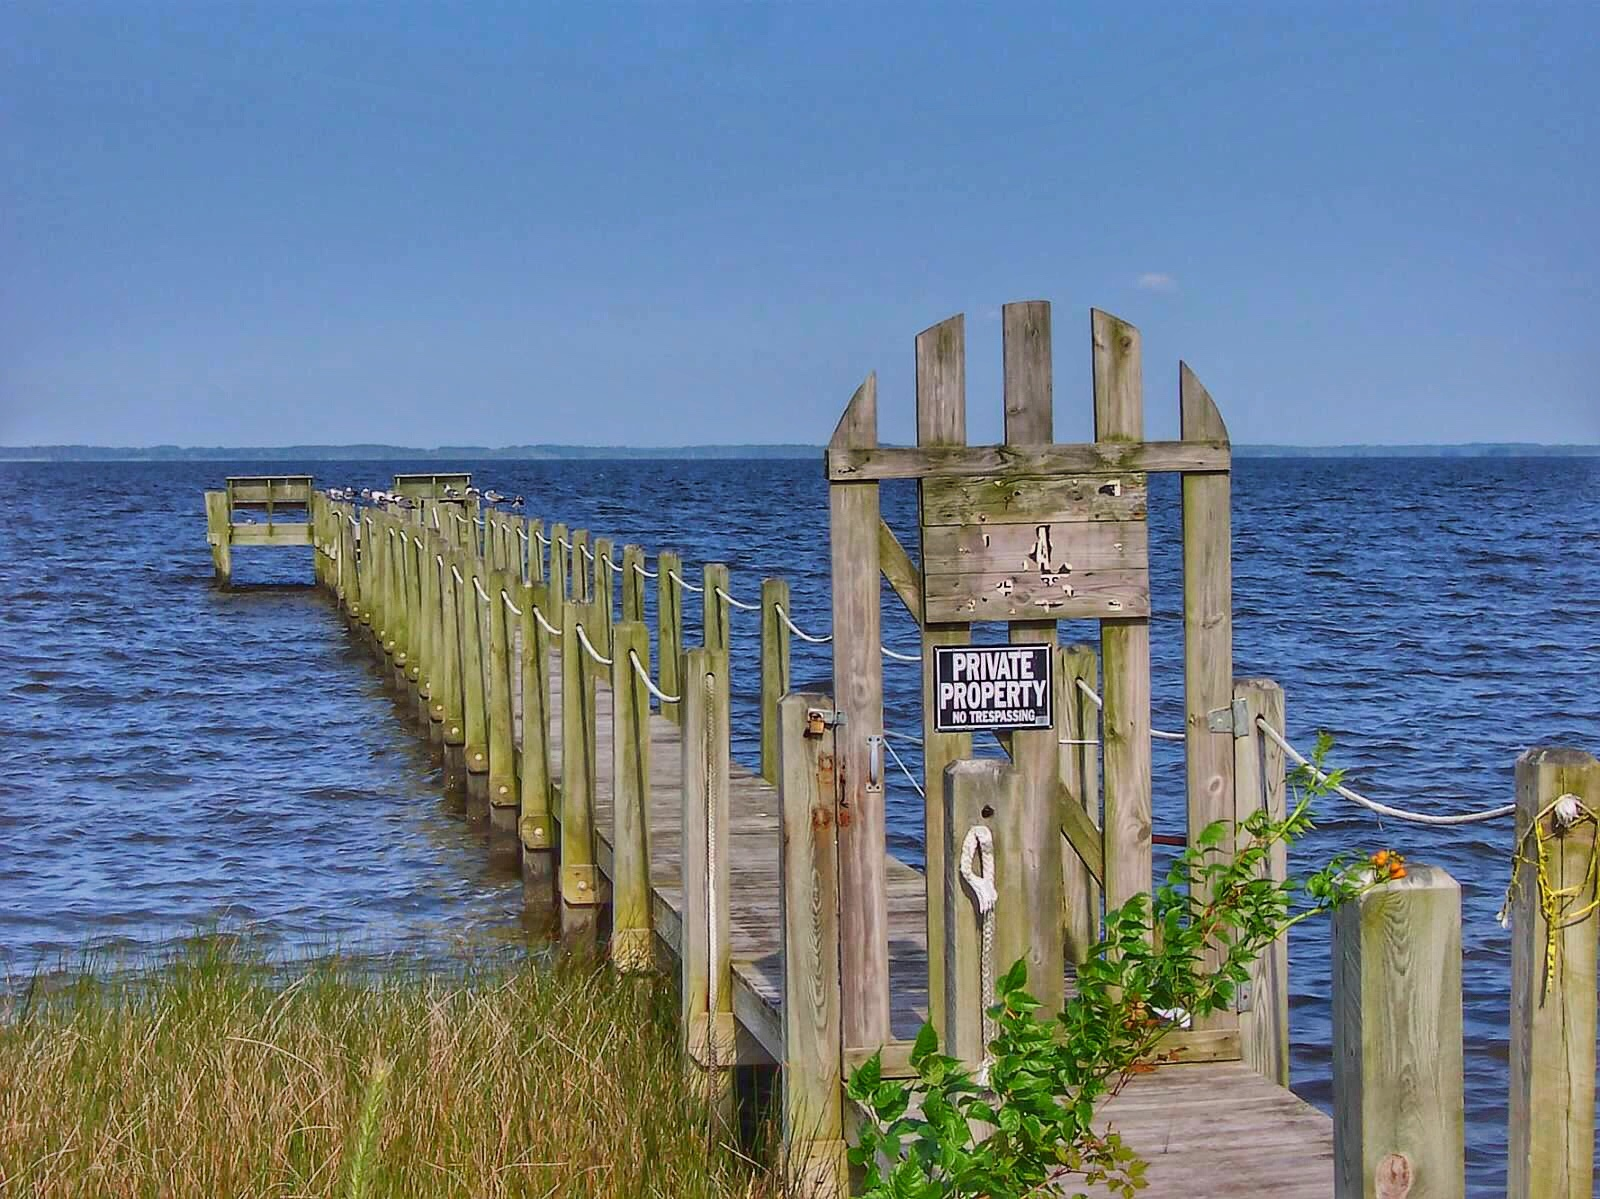 Dock on the Bay by Frank Morris